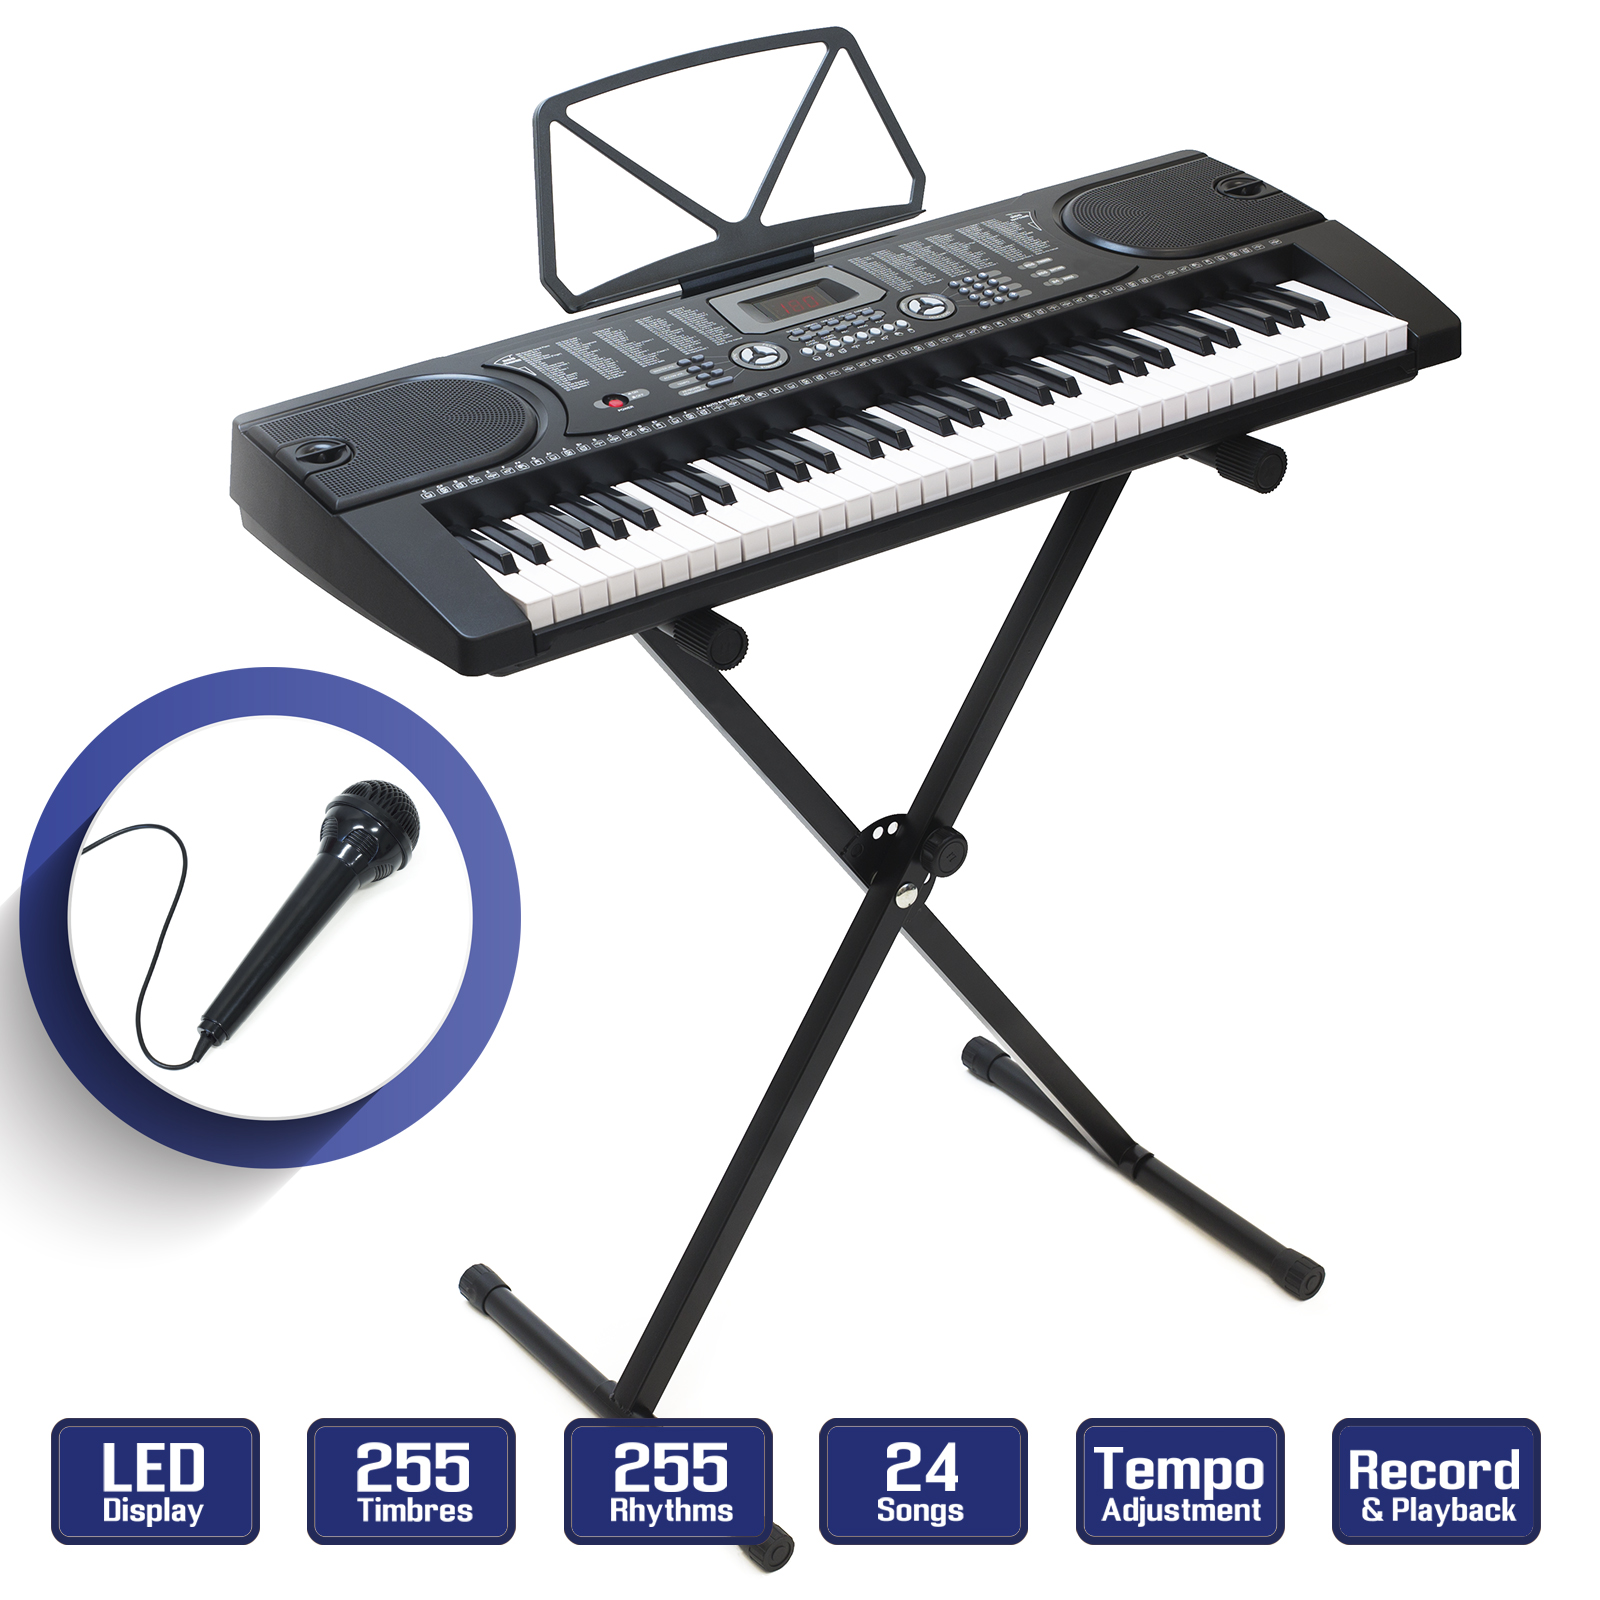 b48f40b4720 Details about Digital Piano Keyboard 61 Key - Portable Electronic  Instrument with Stand